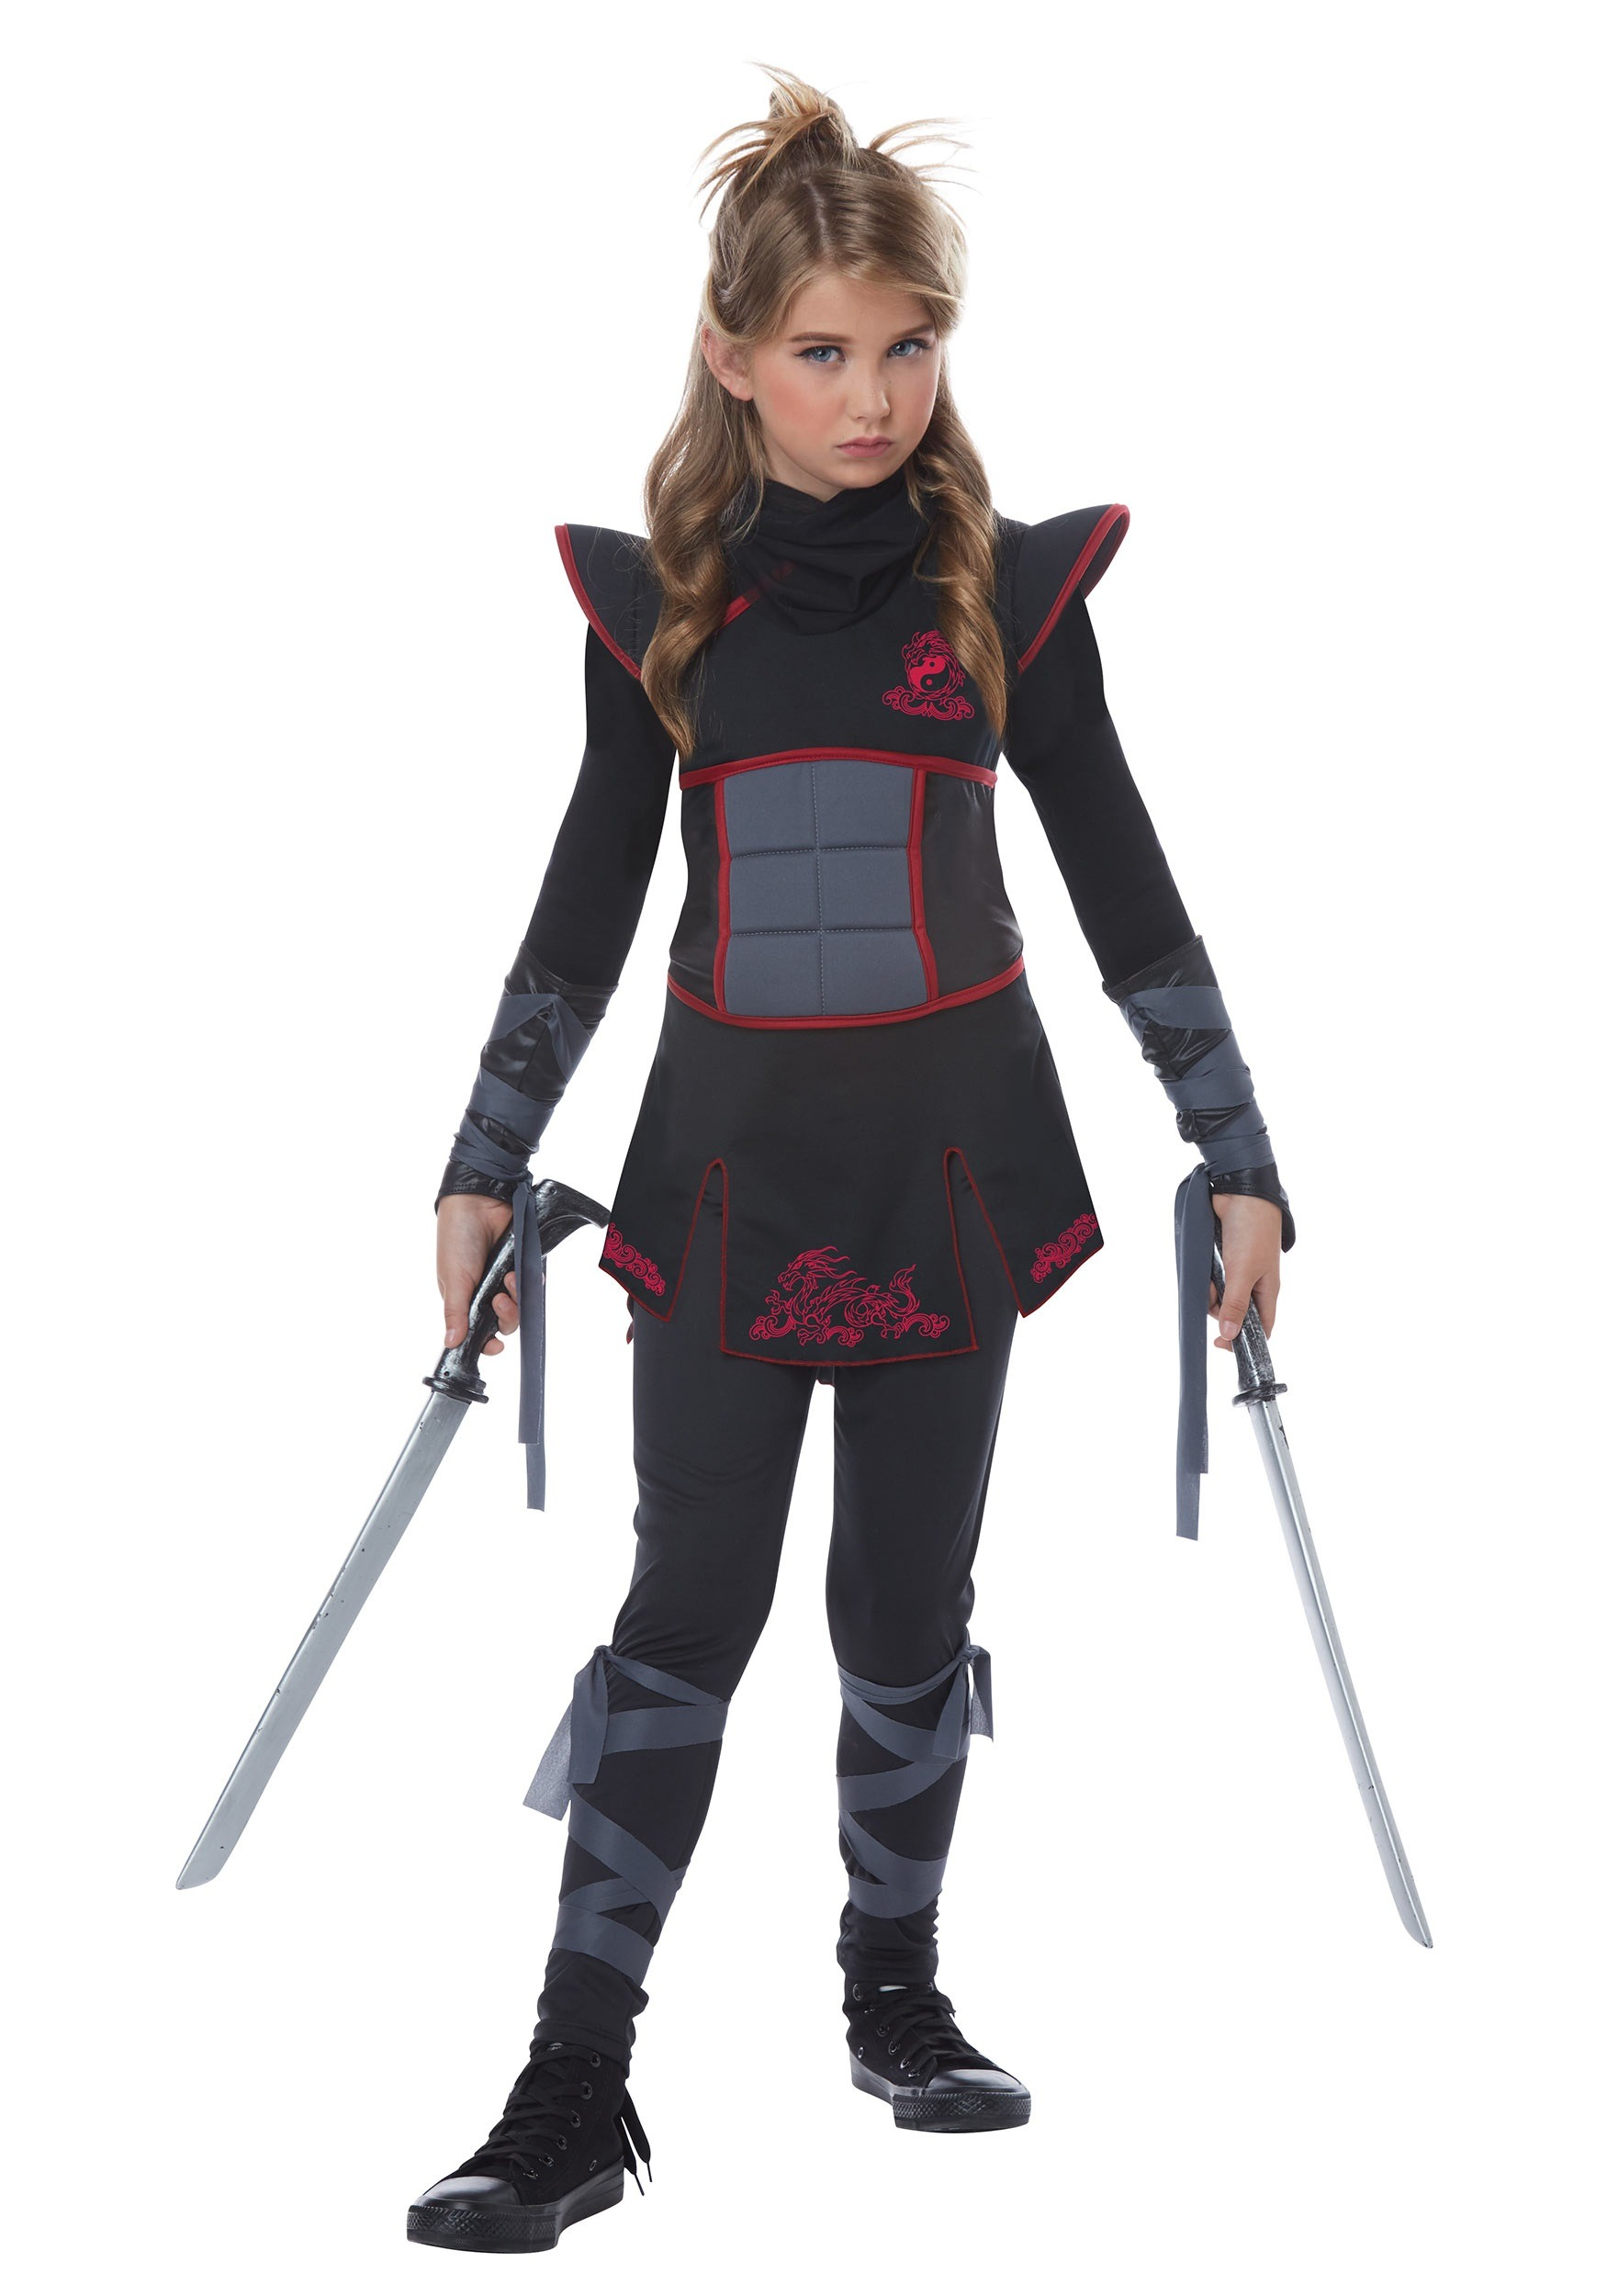 Girls Black Ninja Costume Girls Black Ninja Costume ...  sc 1 st  Halloween Costumes & Black Ninja Costume for Girls